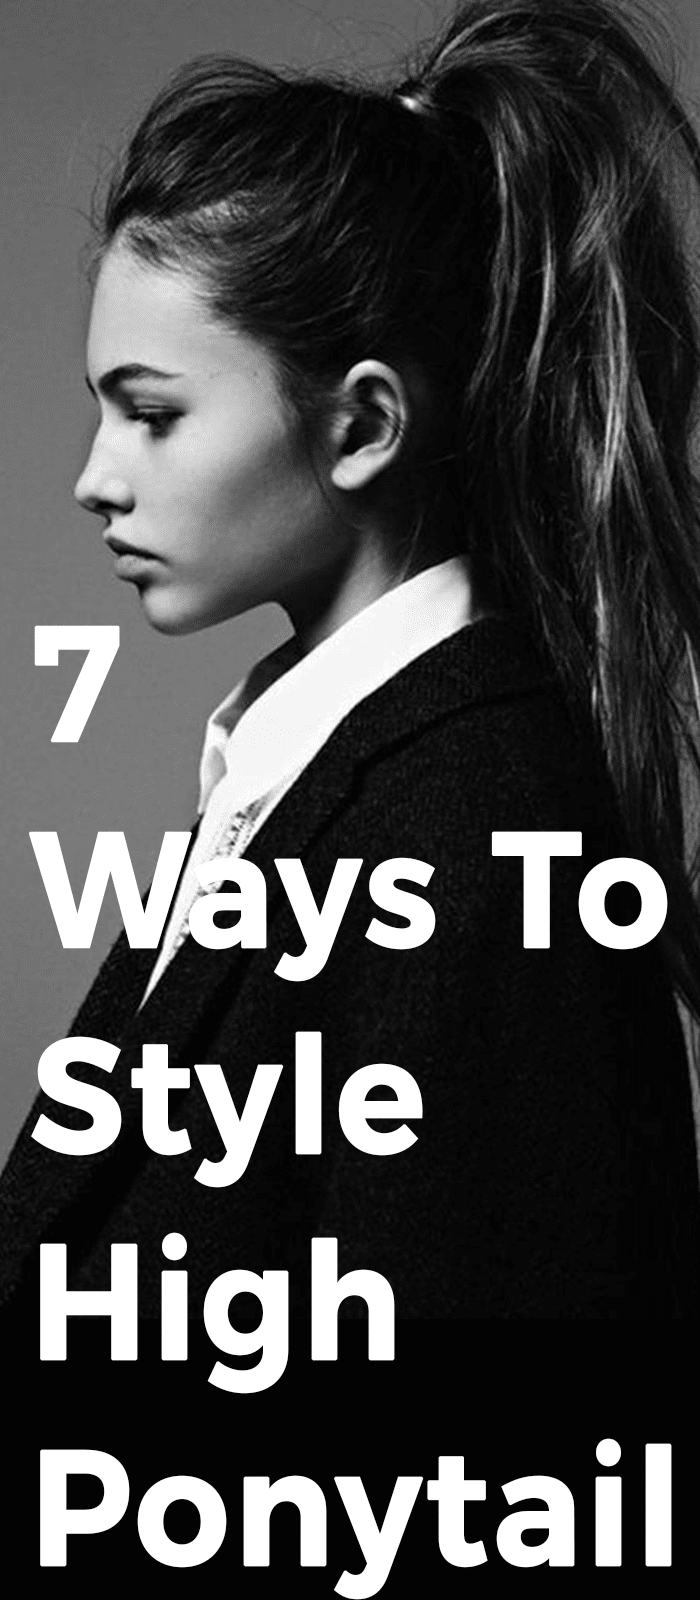 7 Ways To Style High Ponytail.